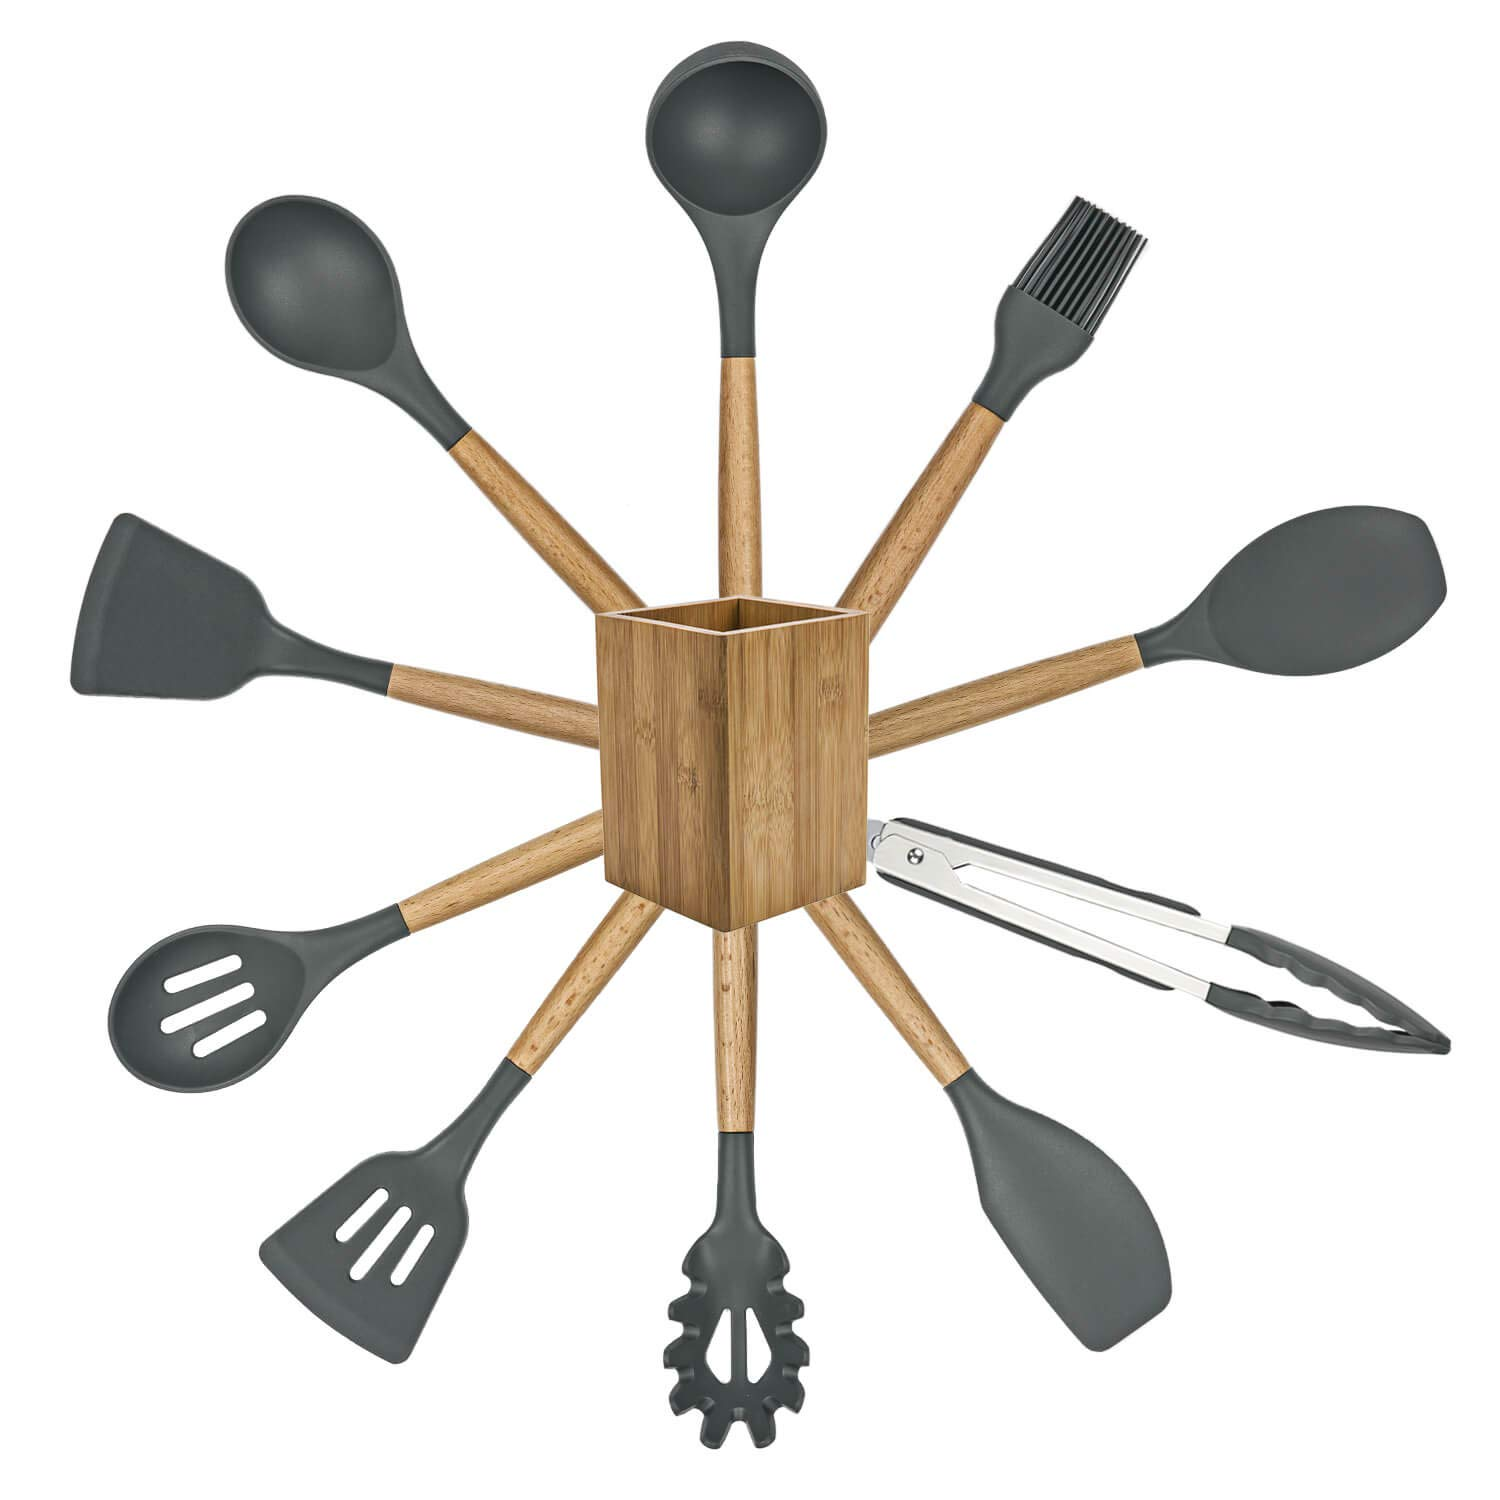 POENSCAE Kitchen Utensils,Silicone Cooking Utensils Set,11-Piece with wood Handles for Non-Stick and Heat Resistant Cookware Set BPA Free-Great Holiday Gift